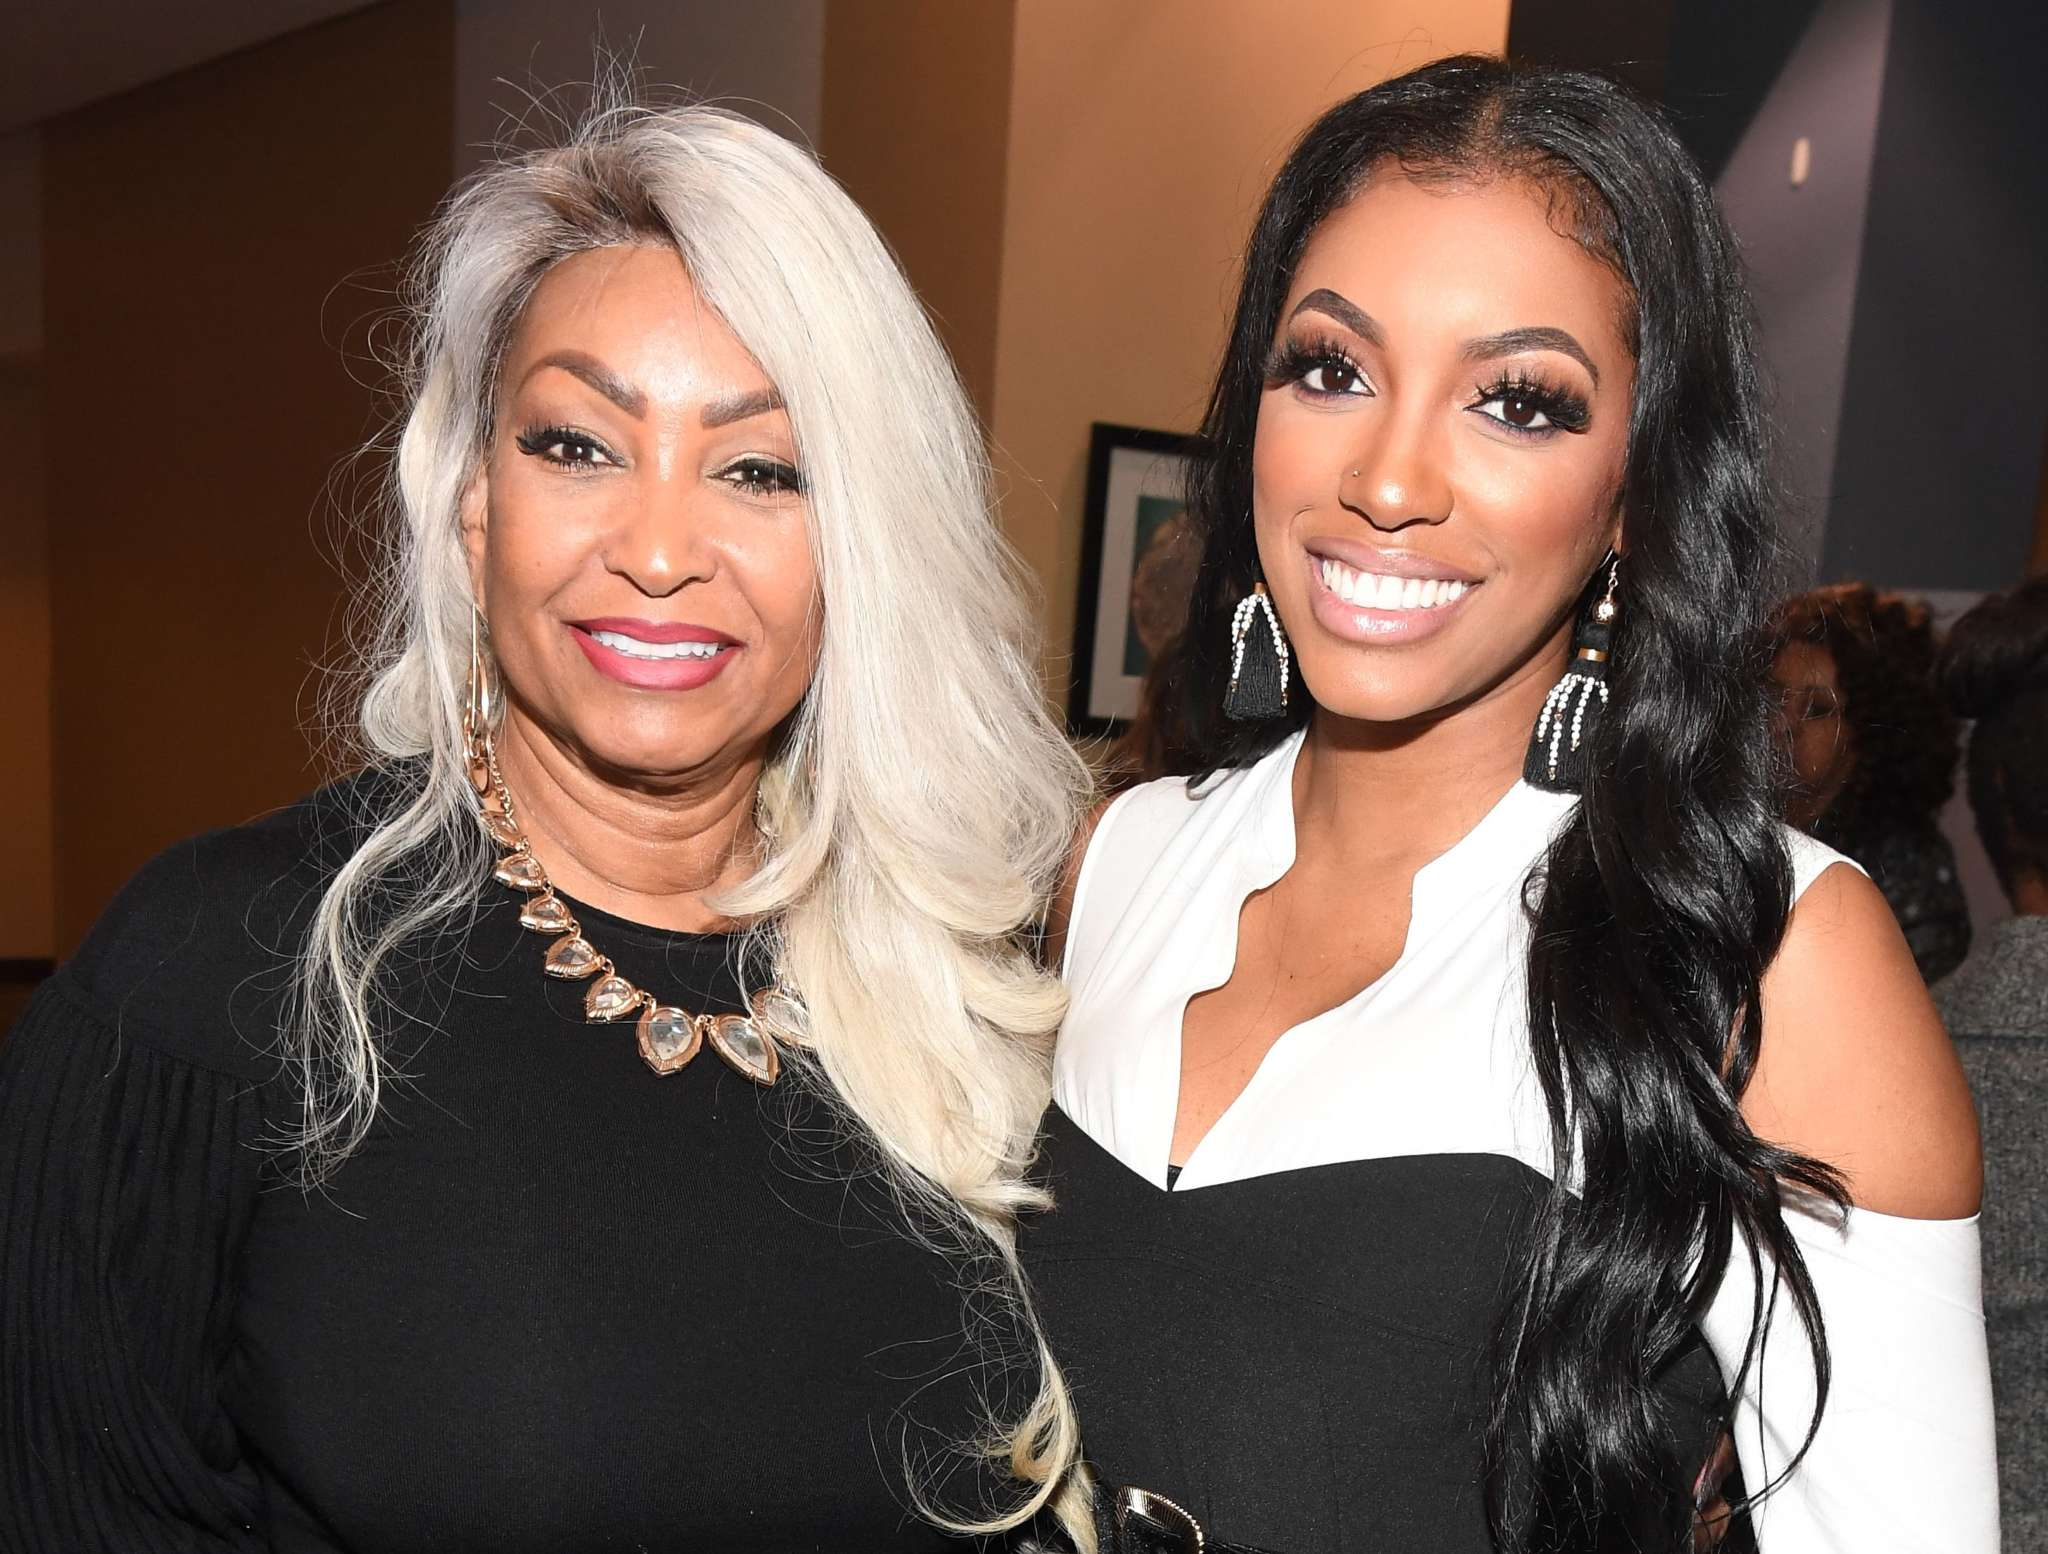 Porsha Williams Celebrates The Birthday Of Her Mom's BF – Check Out Diane's Funny Video With Him